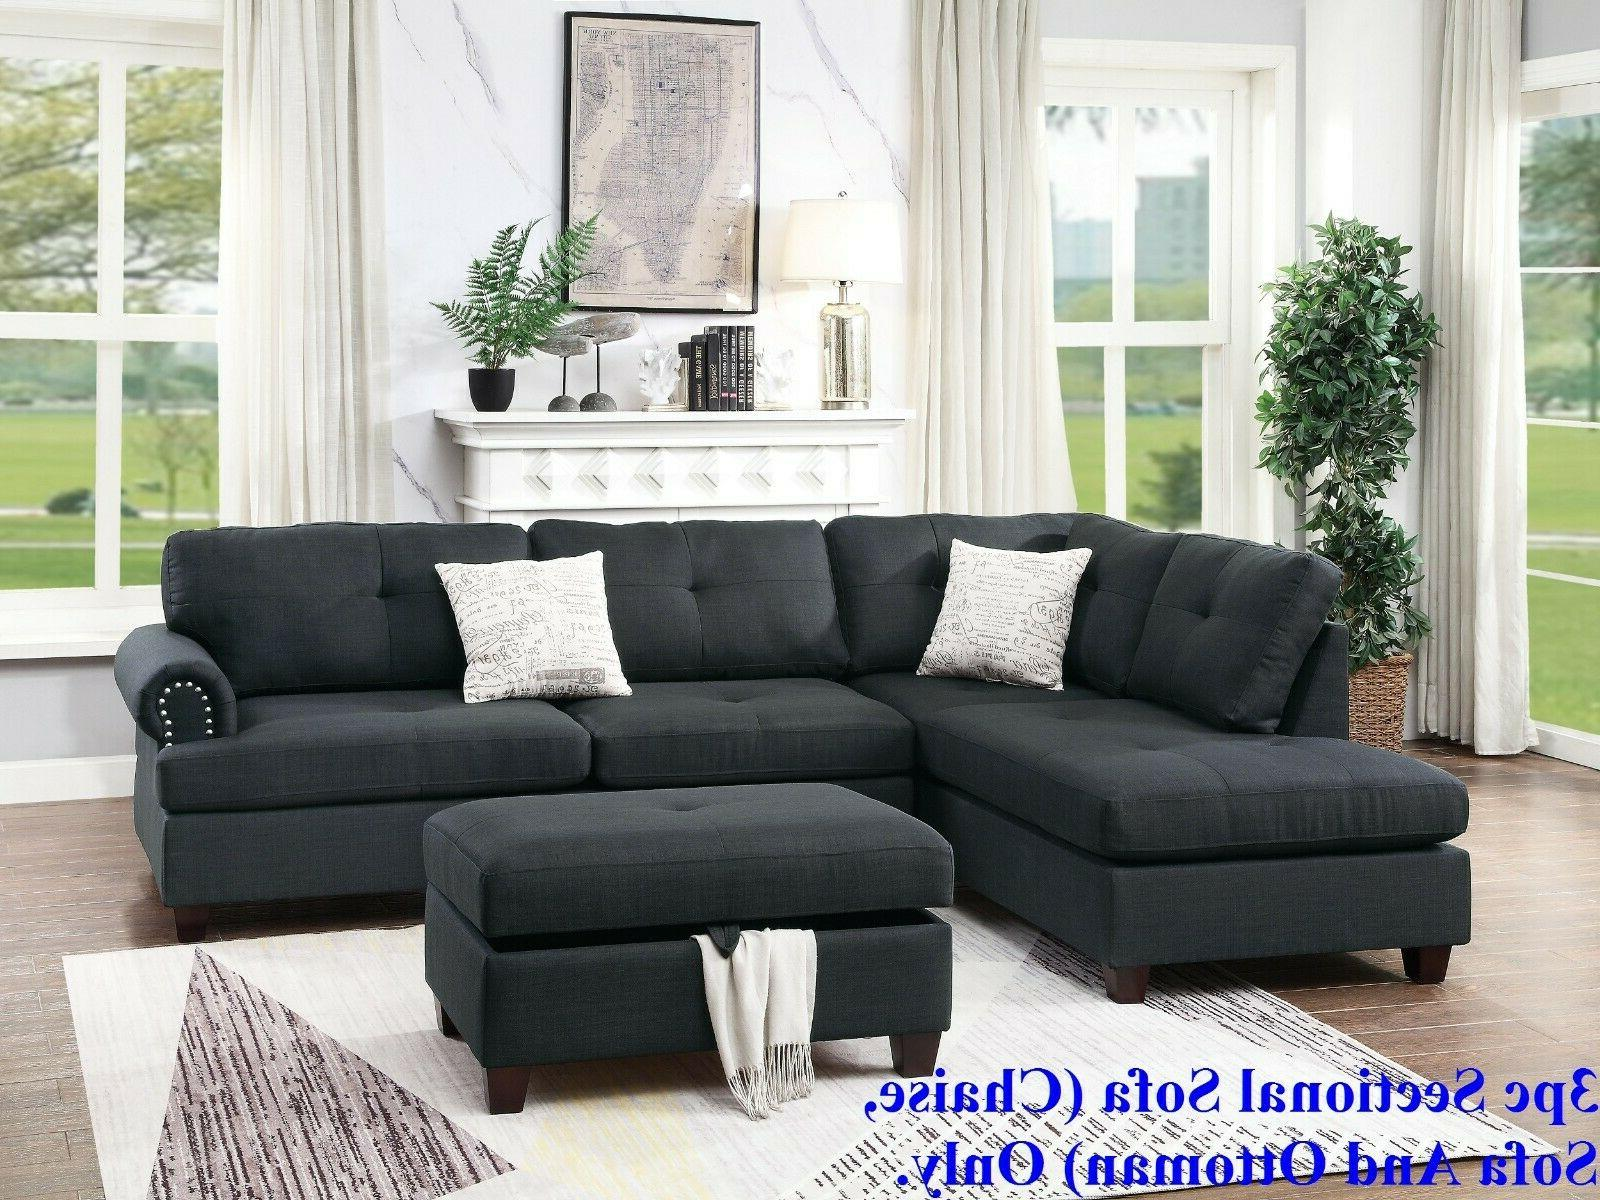 modern sectional sofa l shaped couch tufted